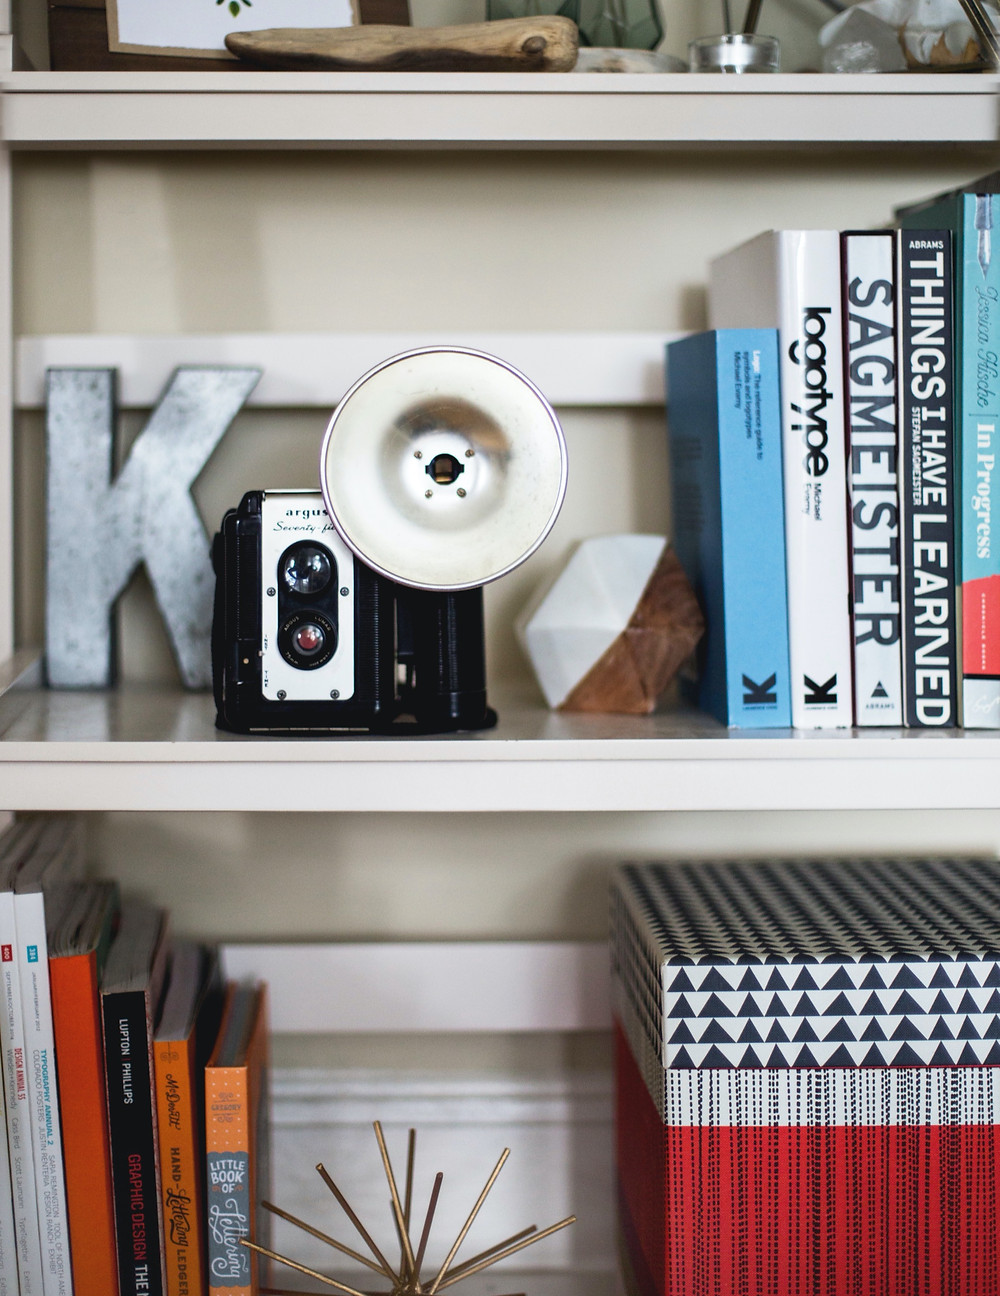 Bookshelf full of familiar knick-knacks, vintage camera, books, and other sentimental pieces.